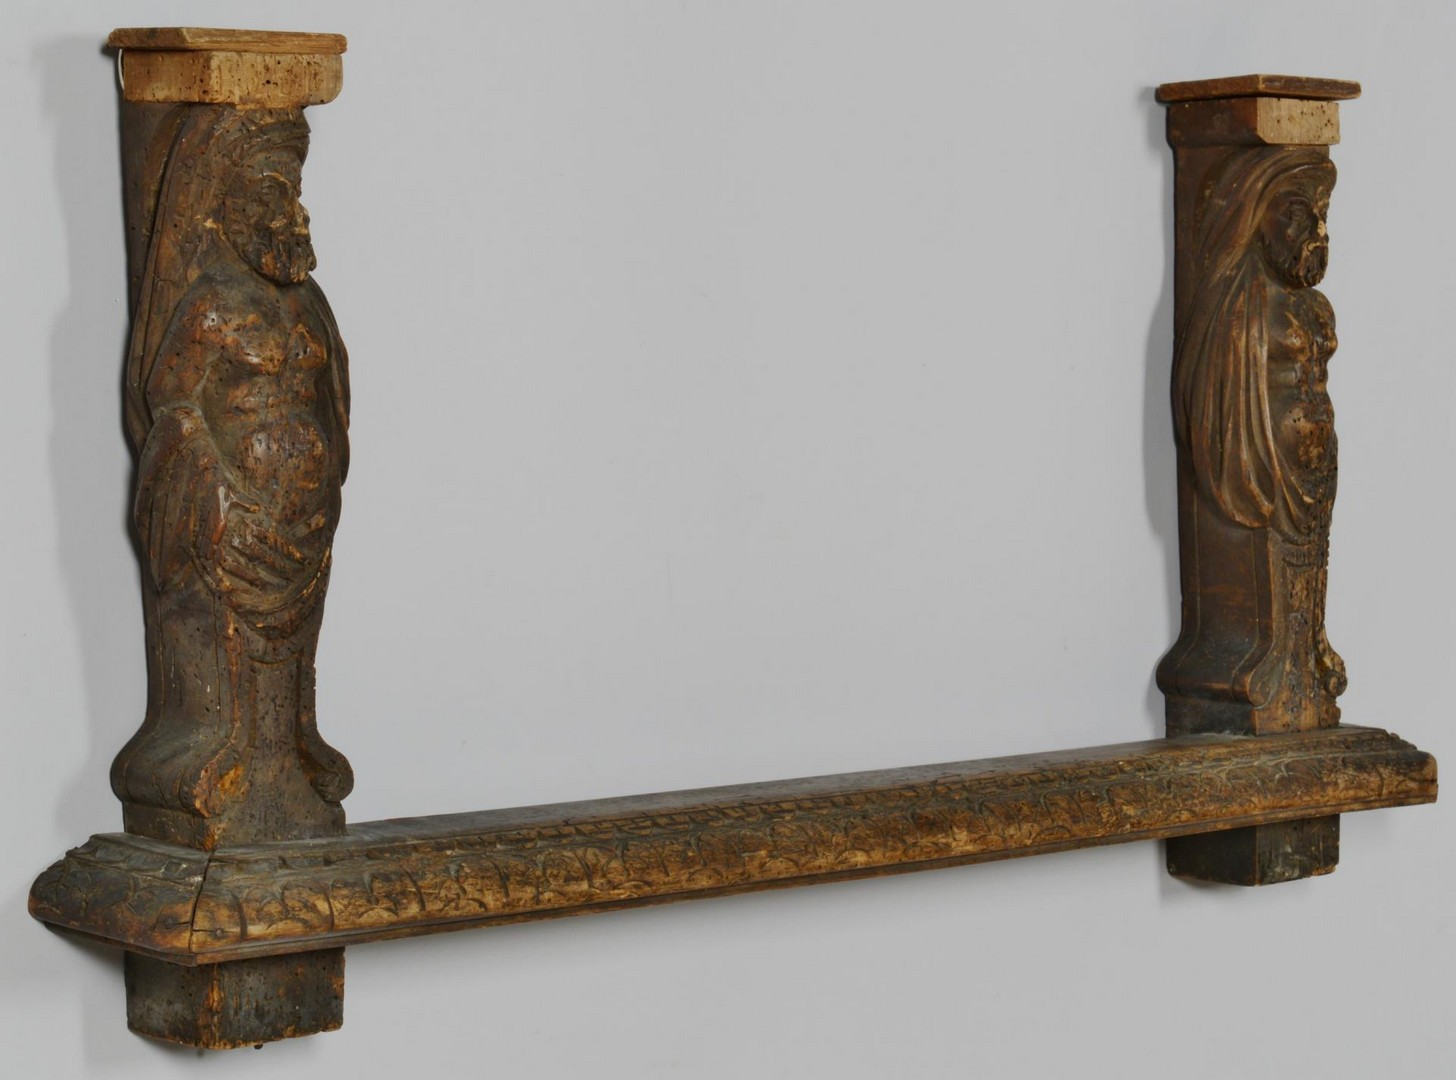 Lot 3383259: Baroque Style Carved Figural Shelf Support